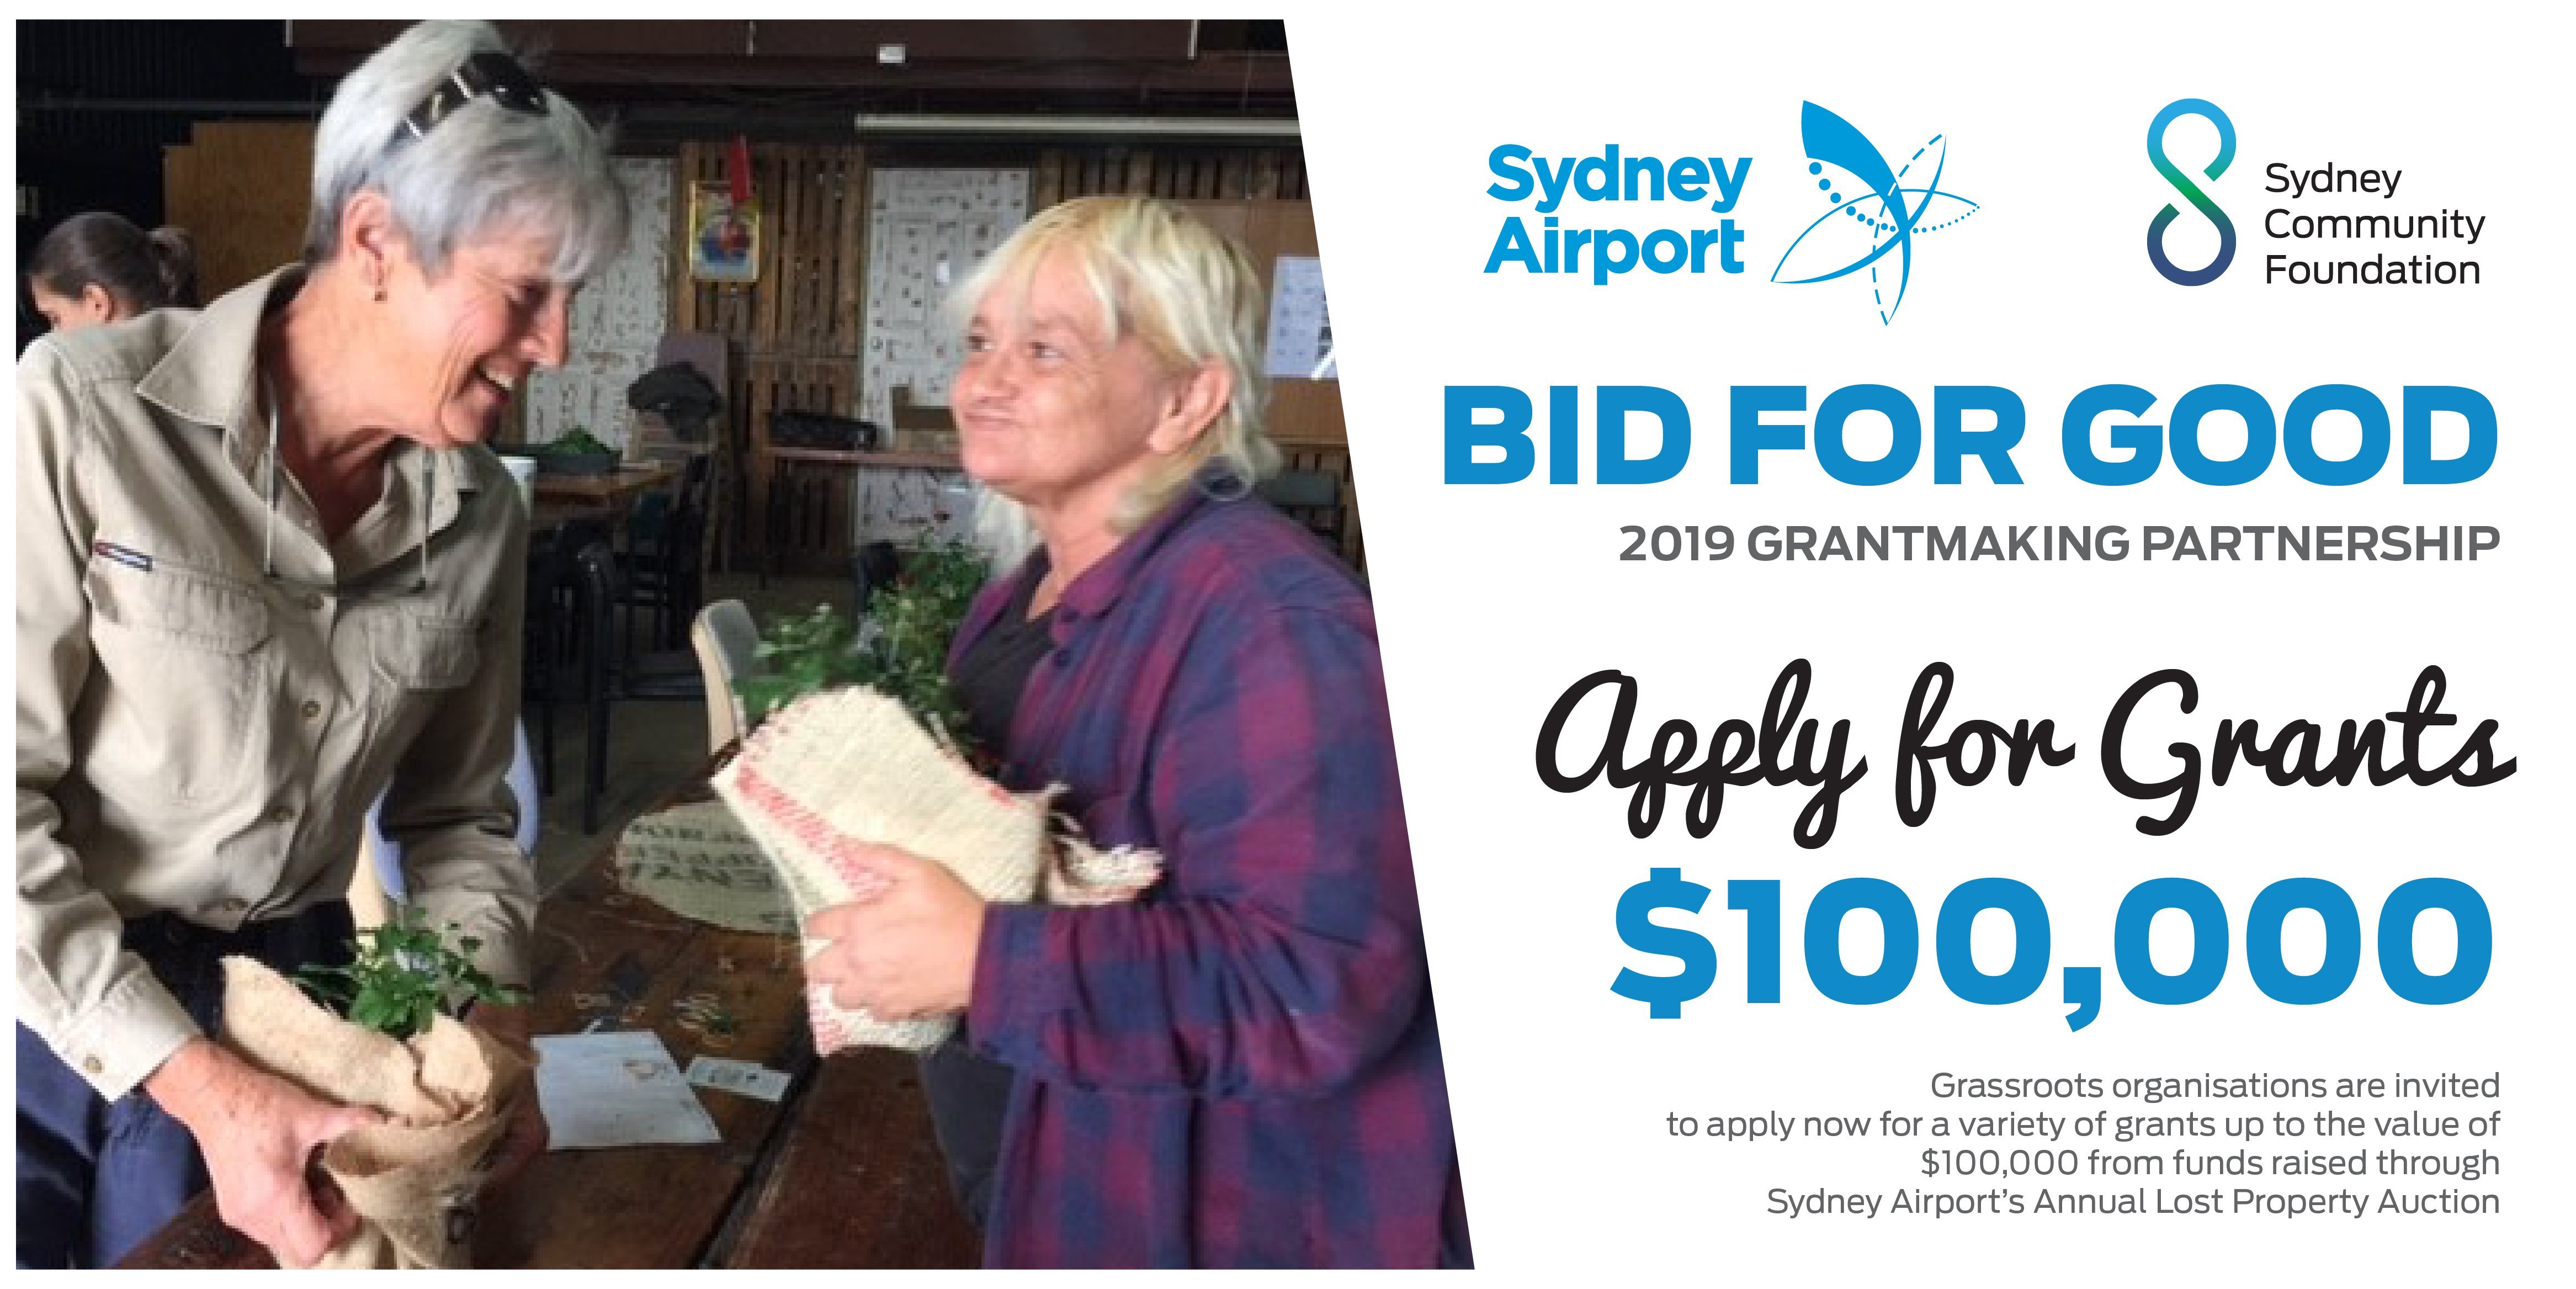 Sydney Airport, Sydney Community Foundation, Cana Communities, Bid for Good, Local Sydney Charity